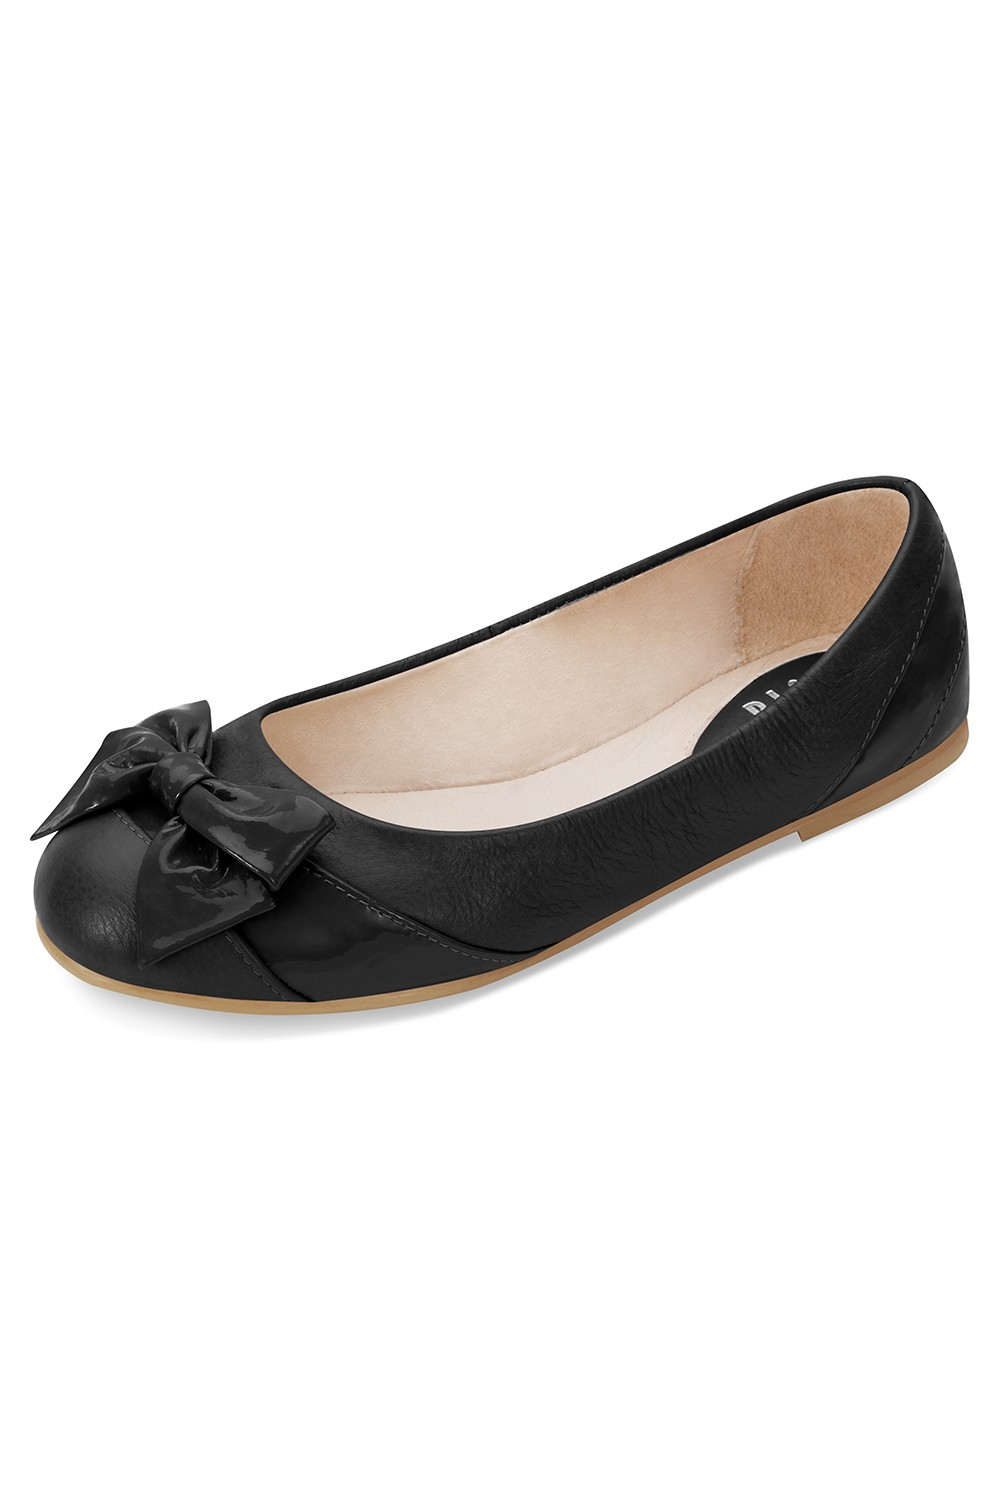 Fiochetta Leather Outsole Girls Fashion Shoes